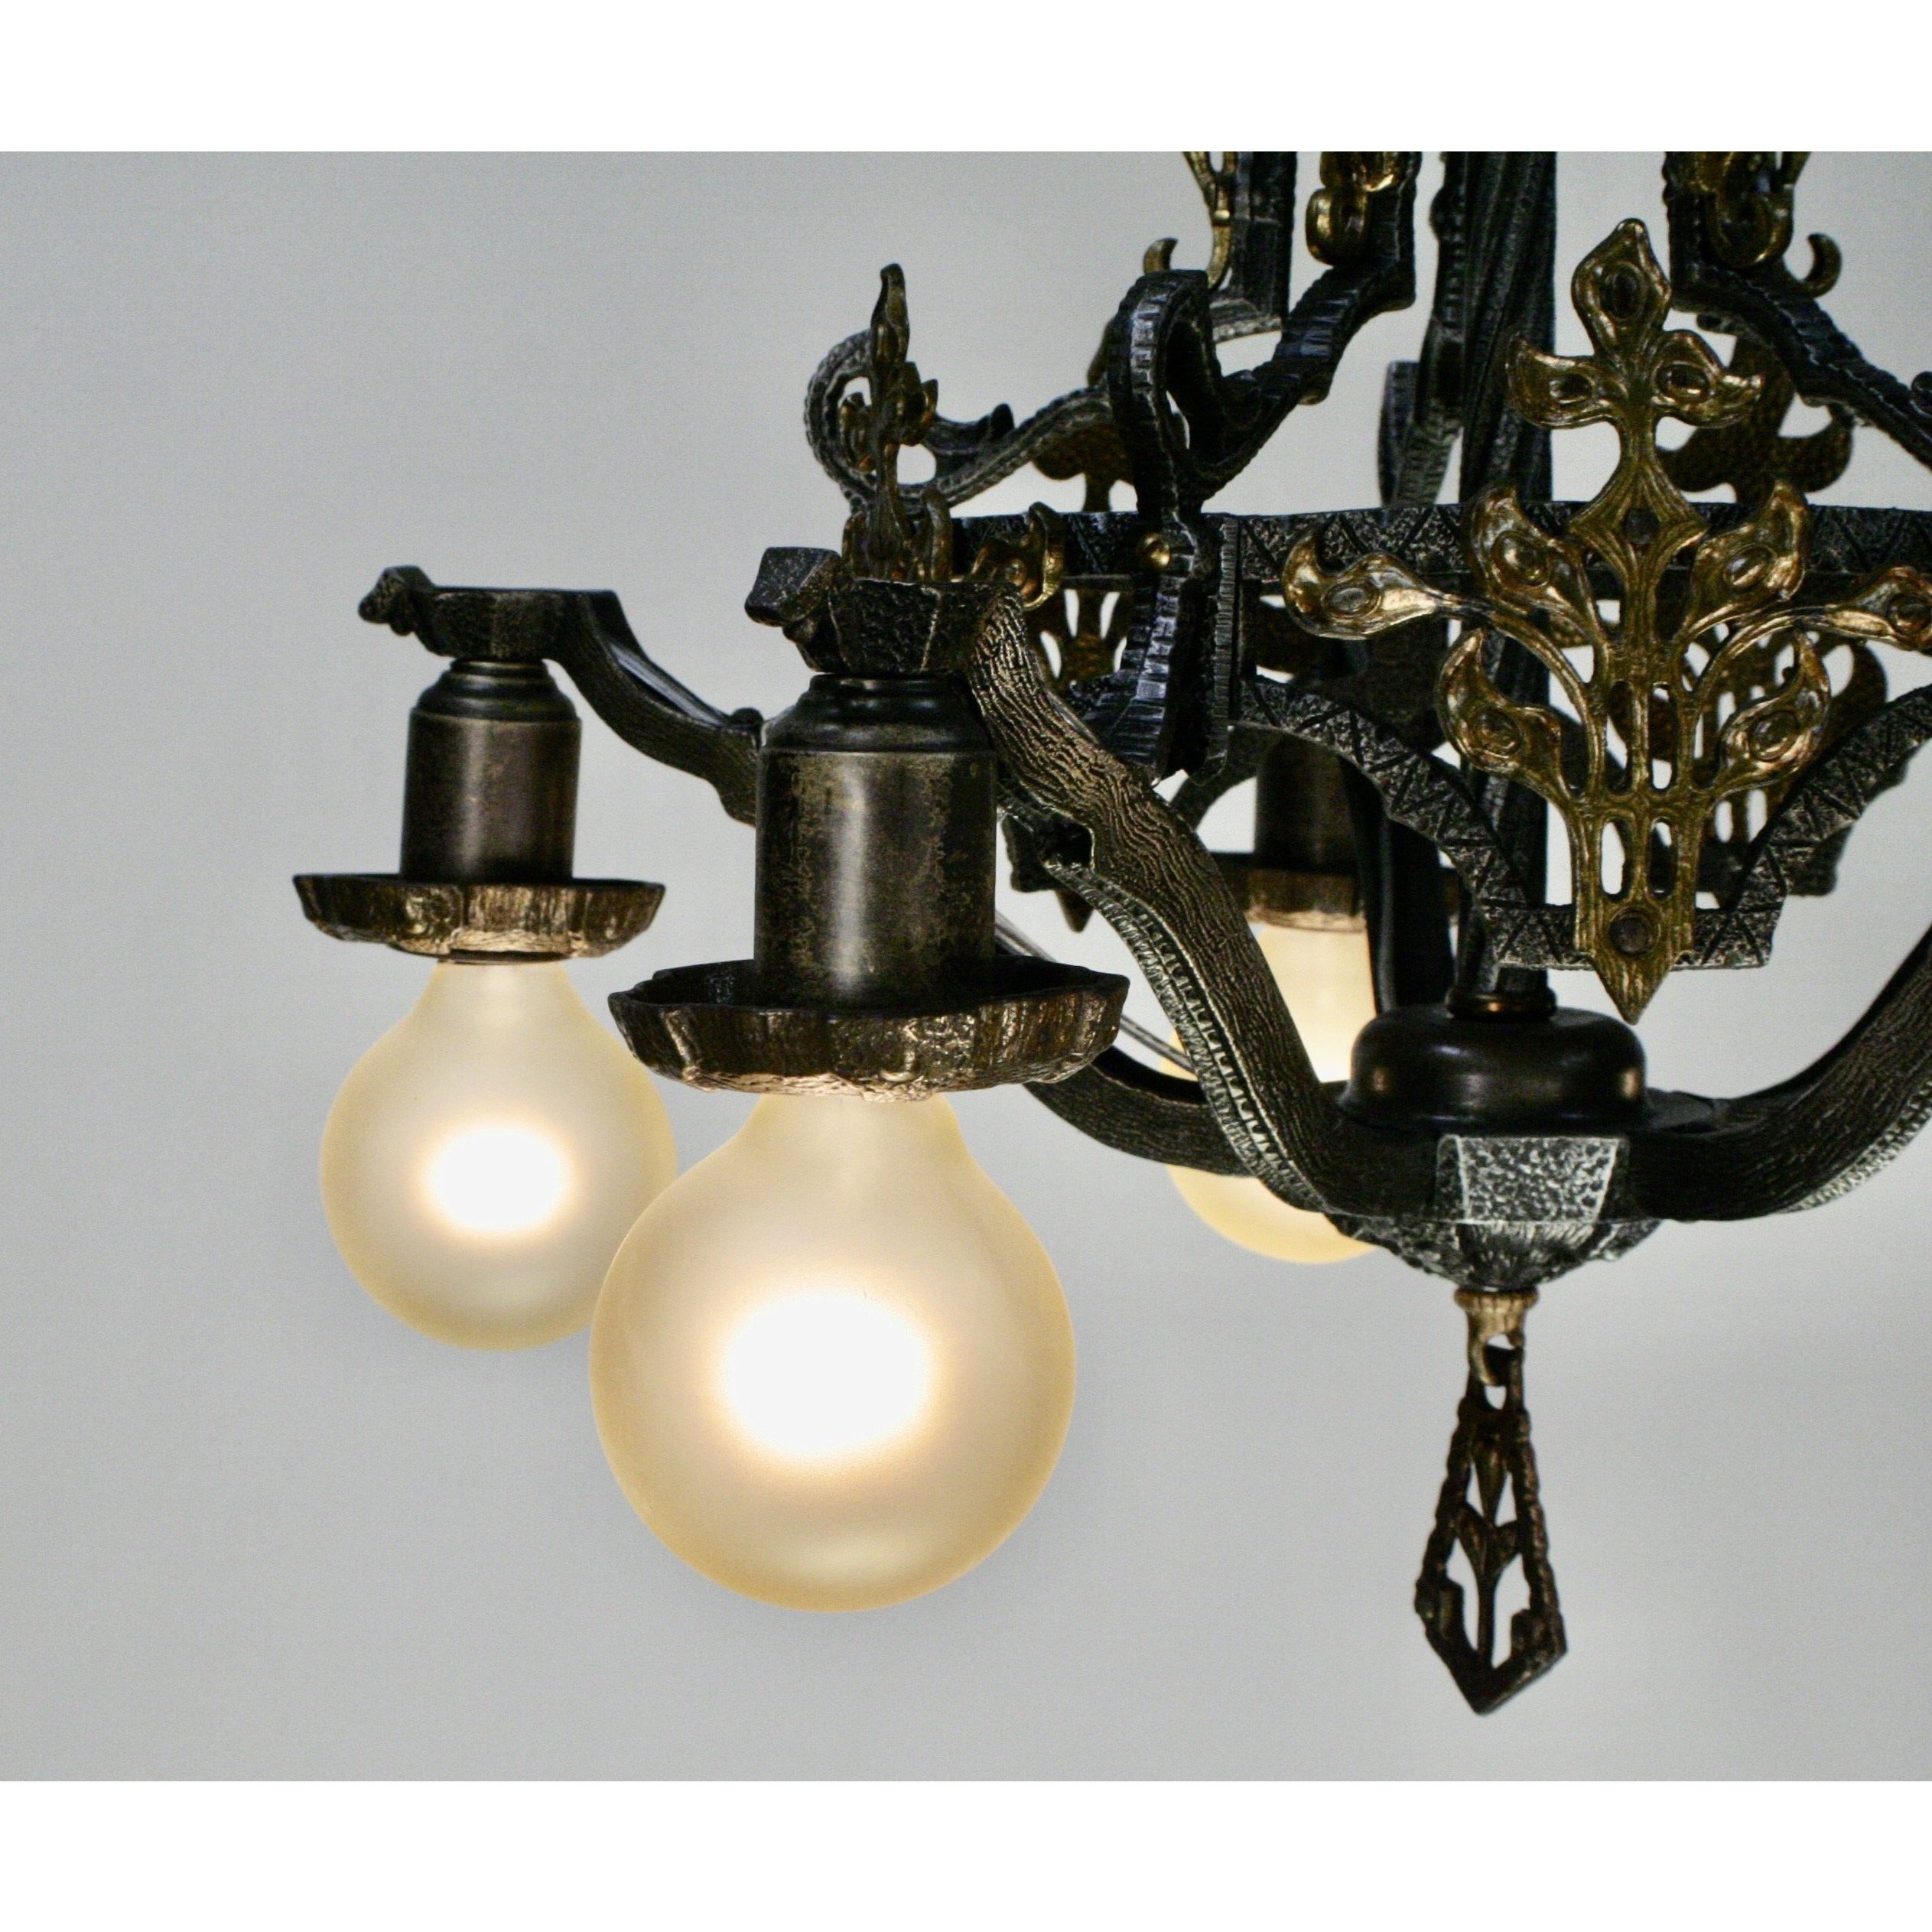 Hammered 1920s Chandelier with Brass Accent Overlays